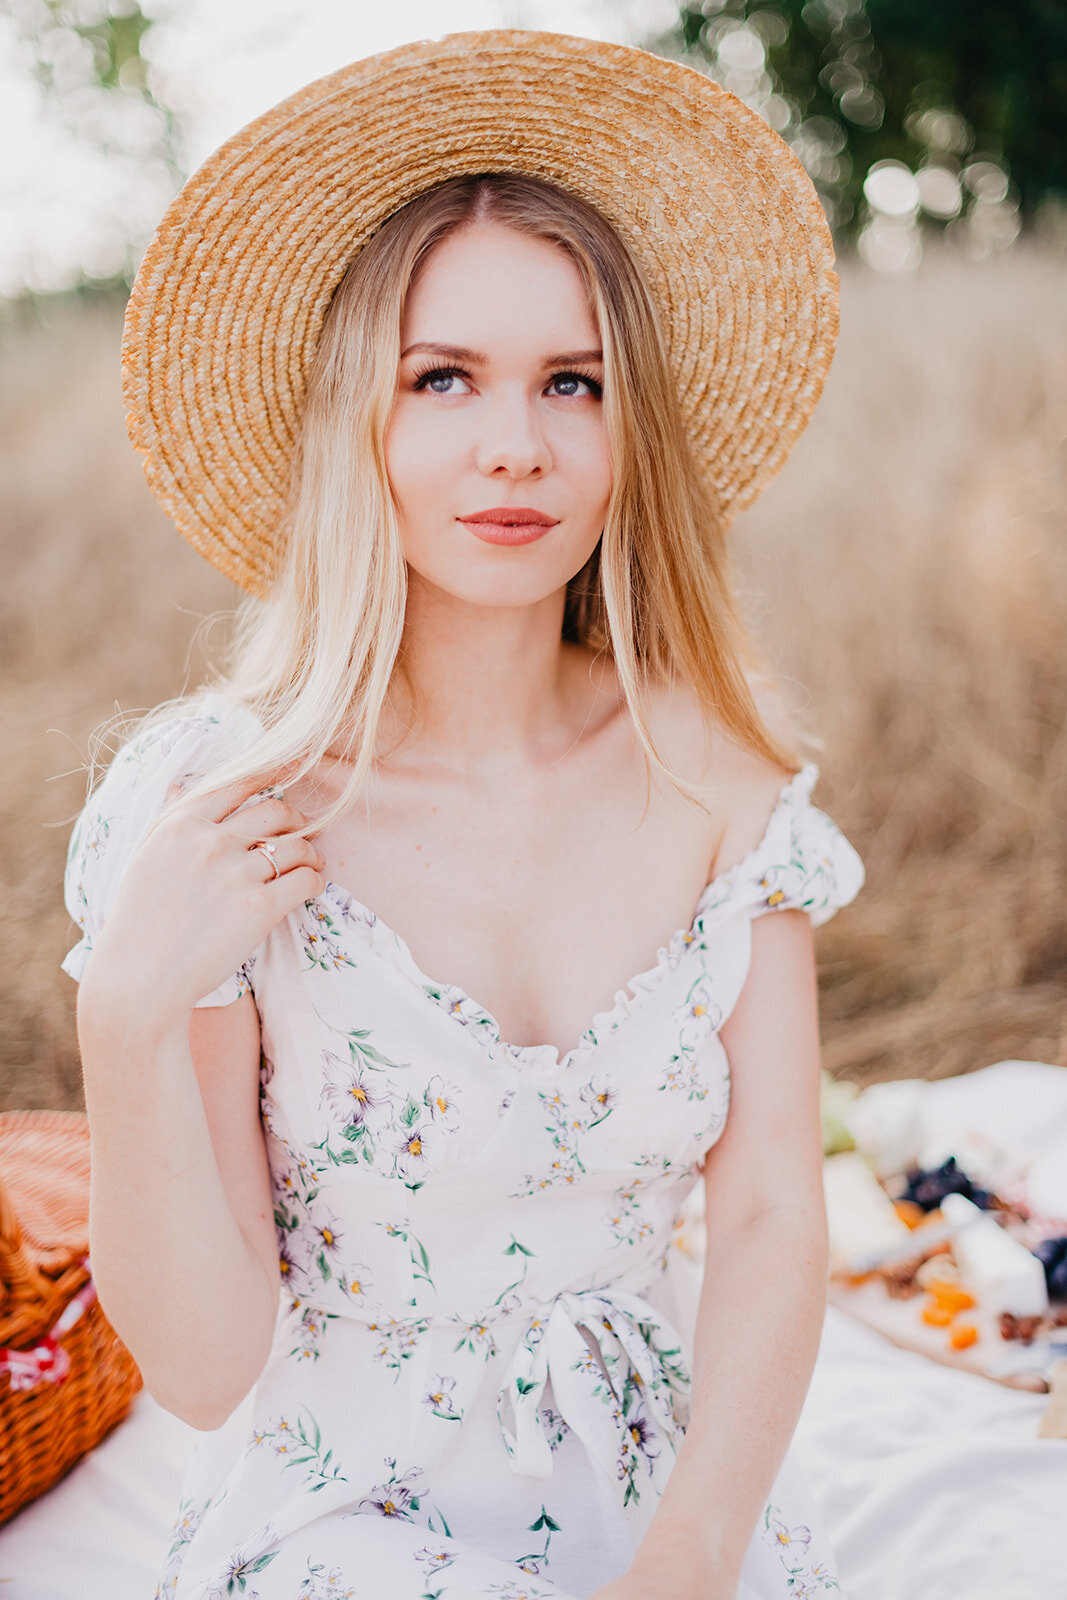 MorganeBallPhotography-Couple-Picnic-EmilieMassimo-look1-48- 7087_websize